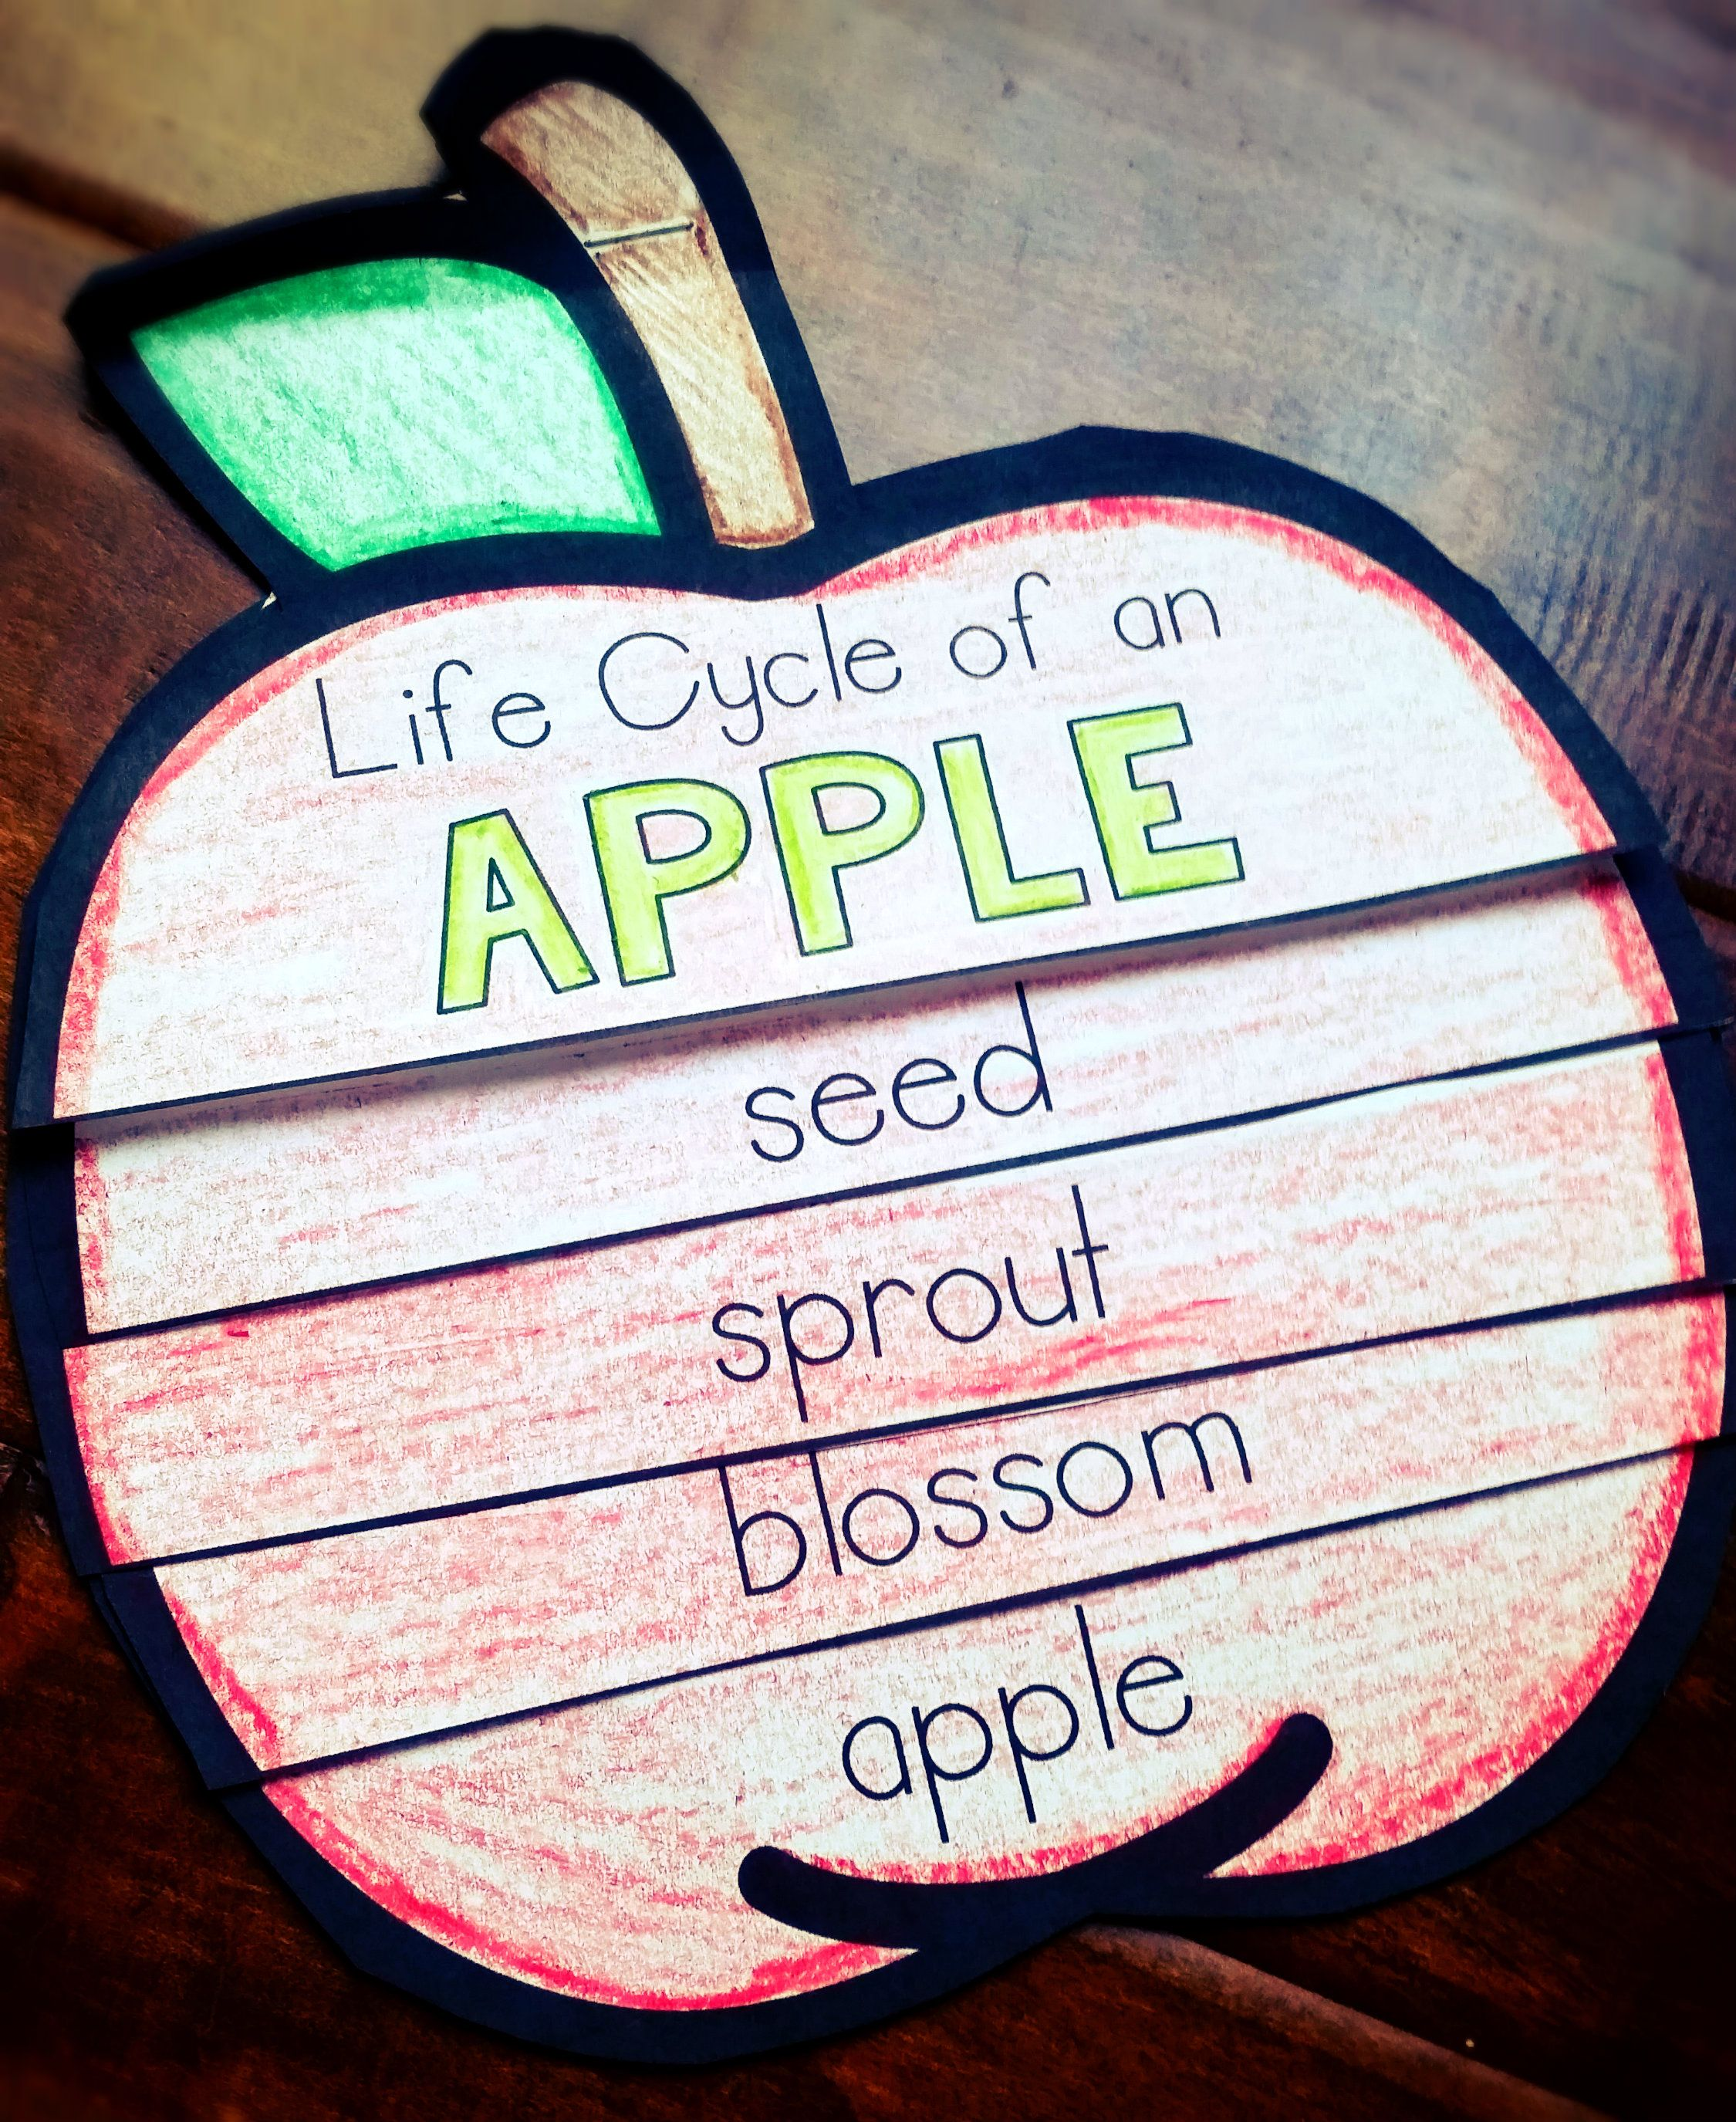 The Kids Will Love This Flip Book To Learn About The Life Cycle Of